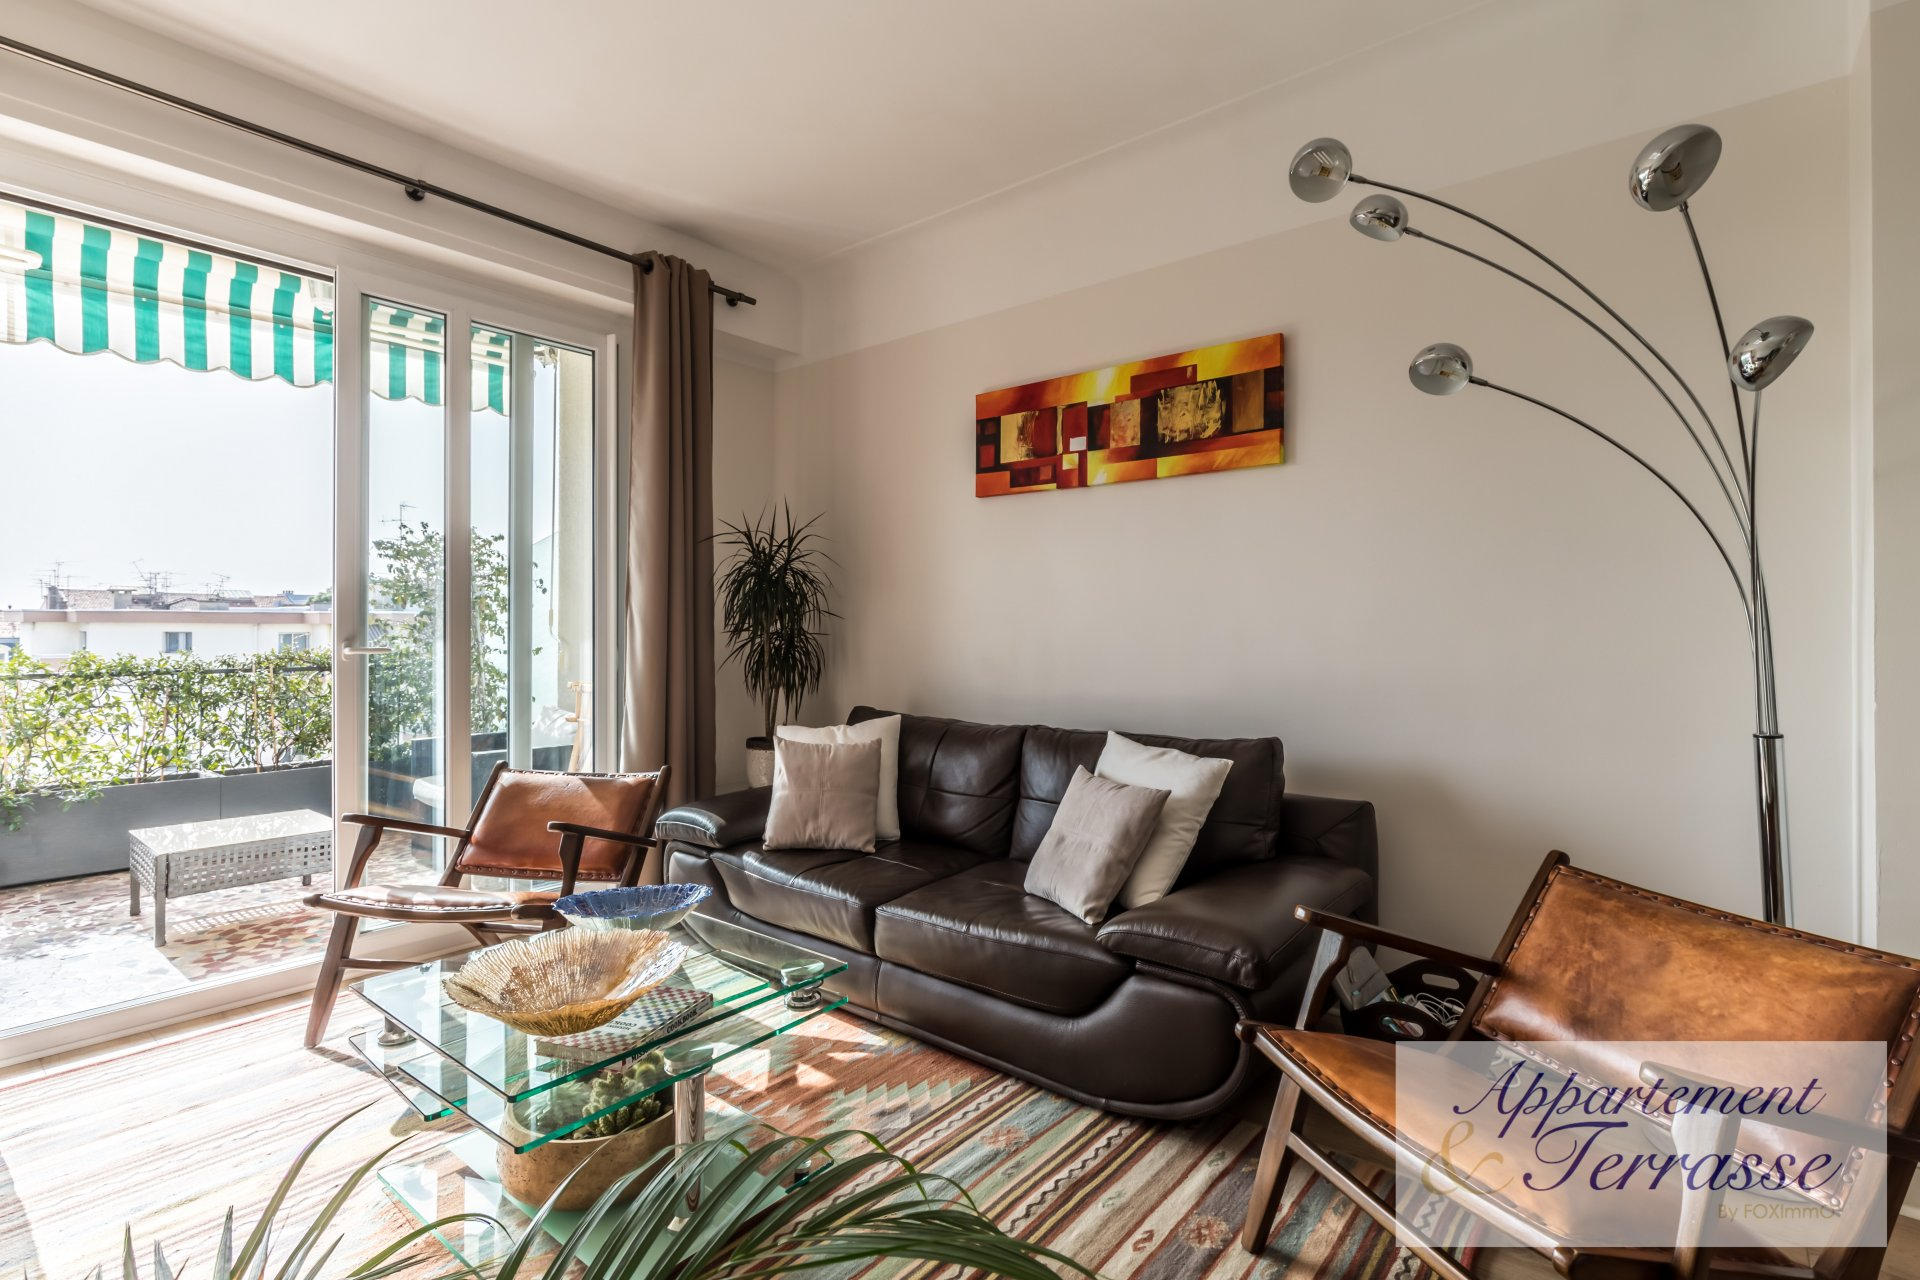 centre of Nice, near liberation, on a high floor, with a beautiful terrace of 12m2, panoramic view,